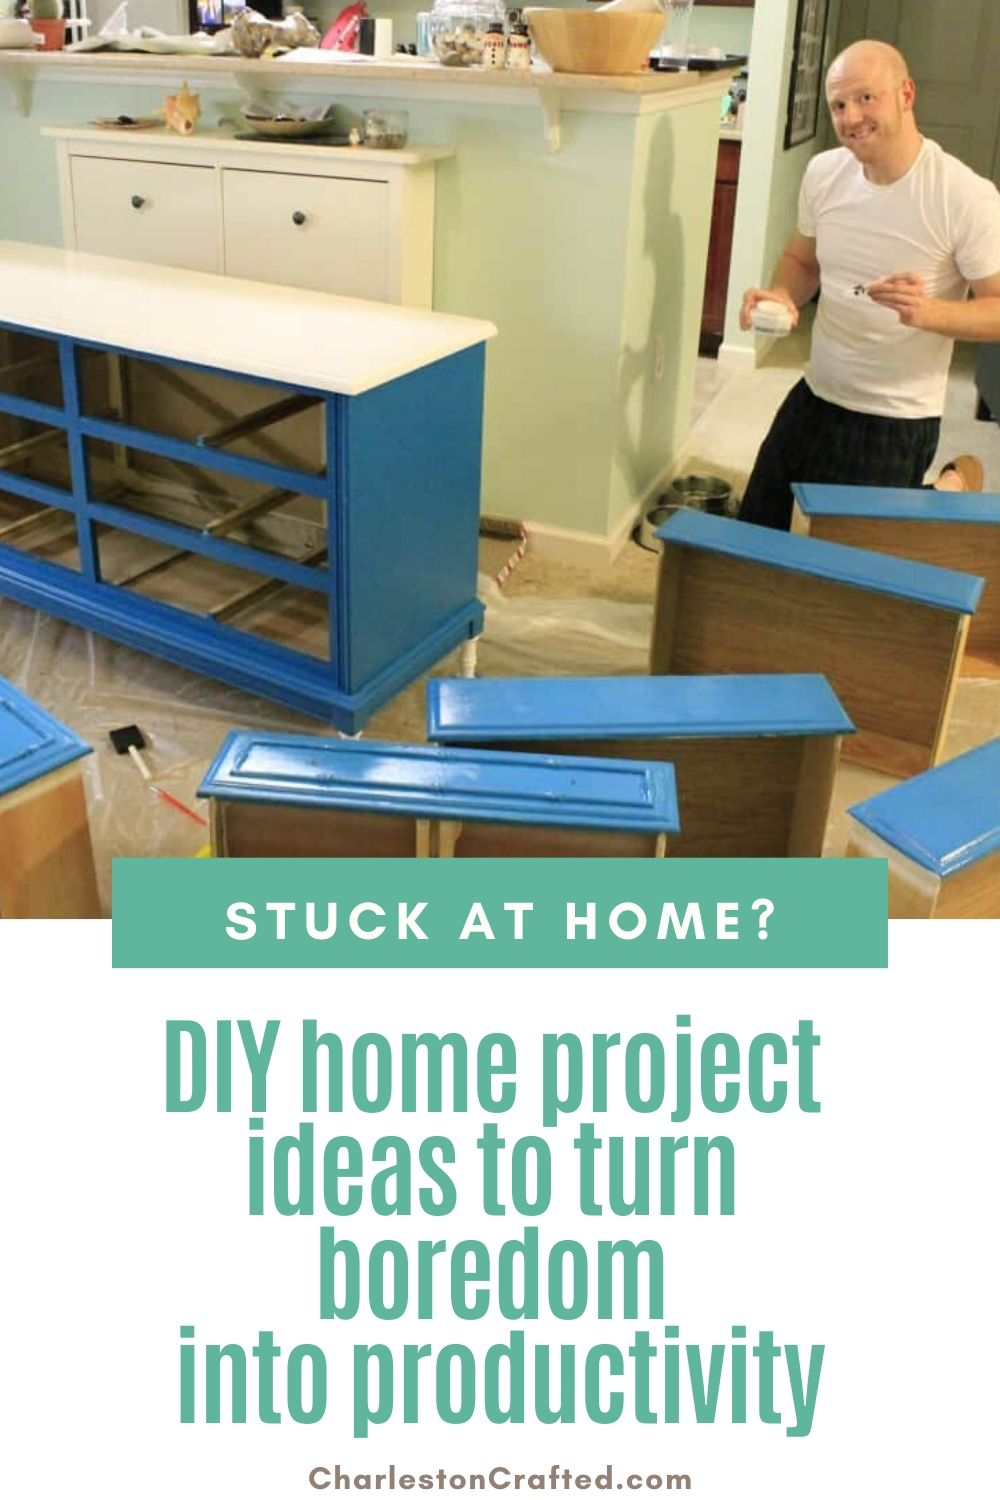 stuck-at-home? DIY project ideas to turn boredom into productivity